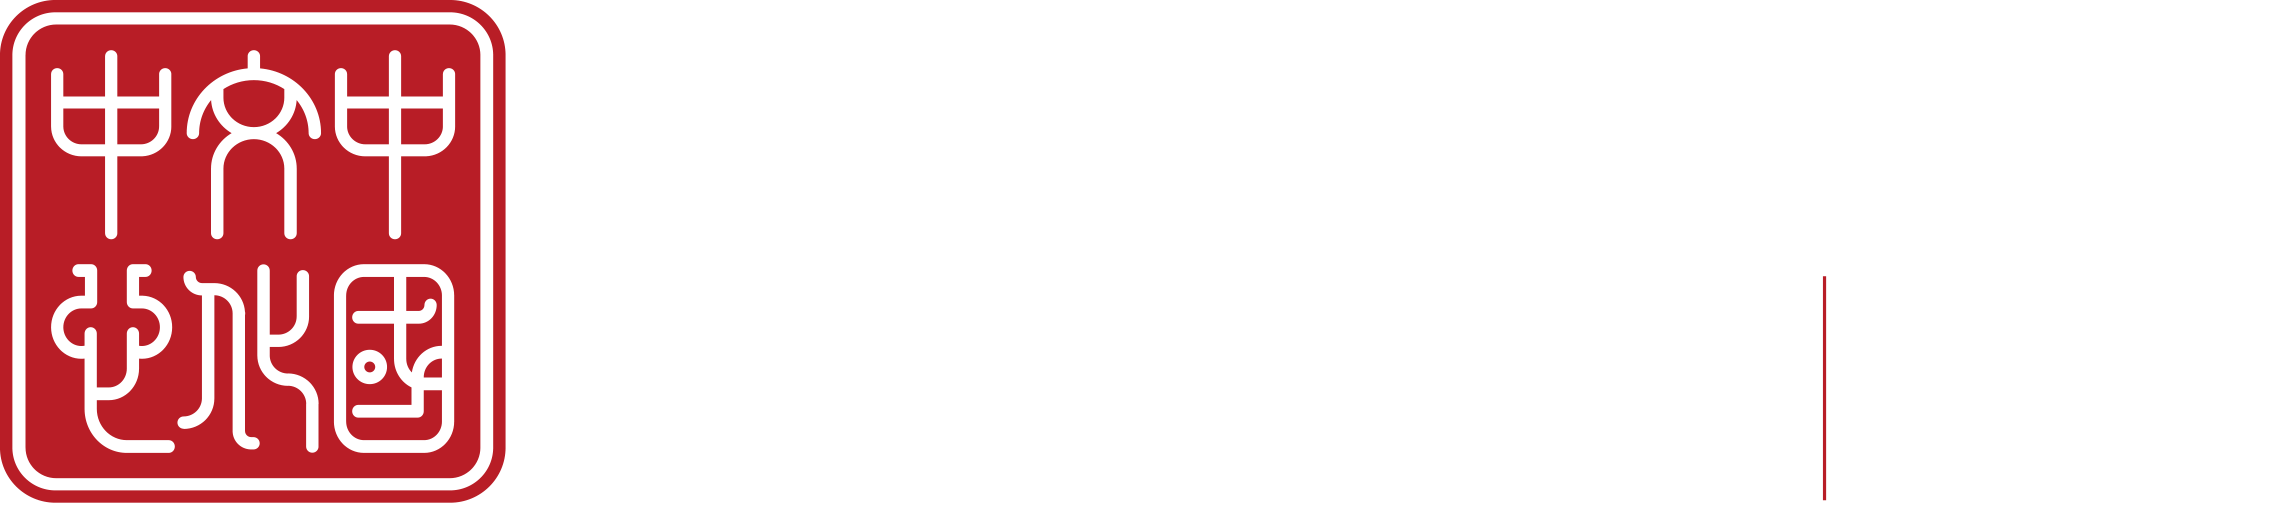 Centro Cultural de China en Madrid